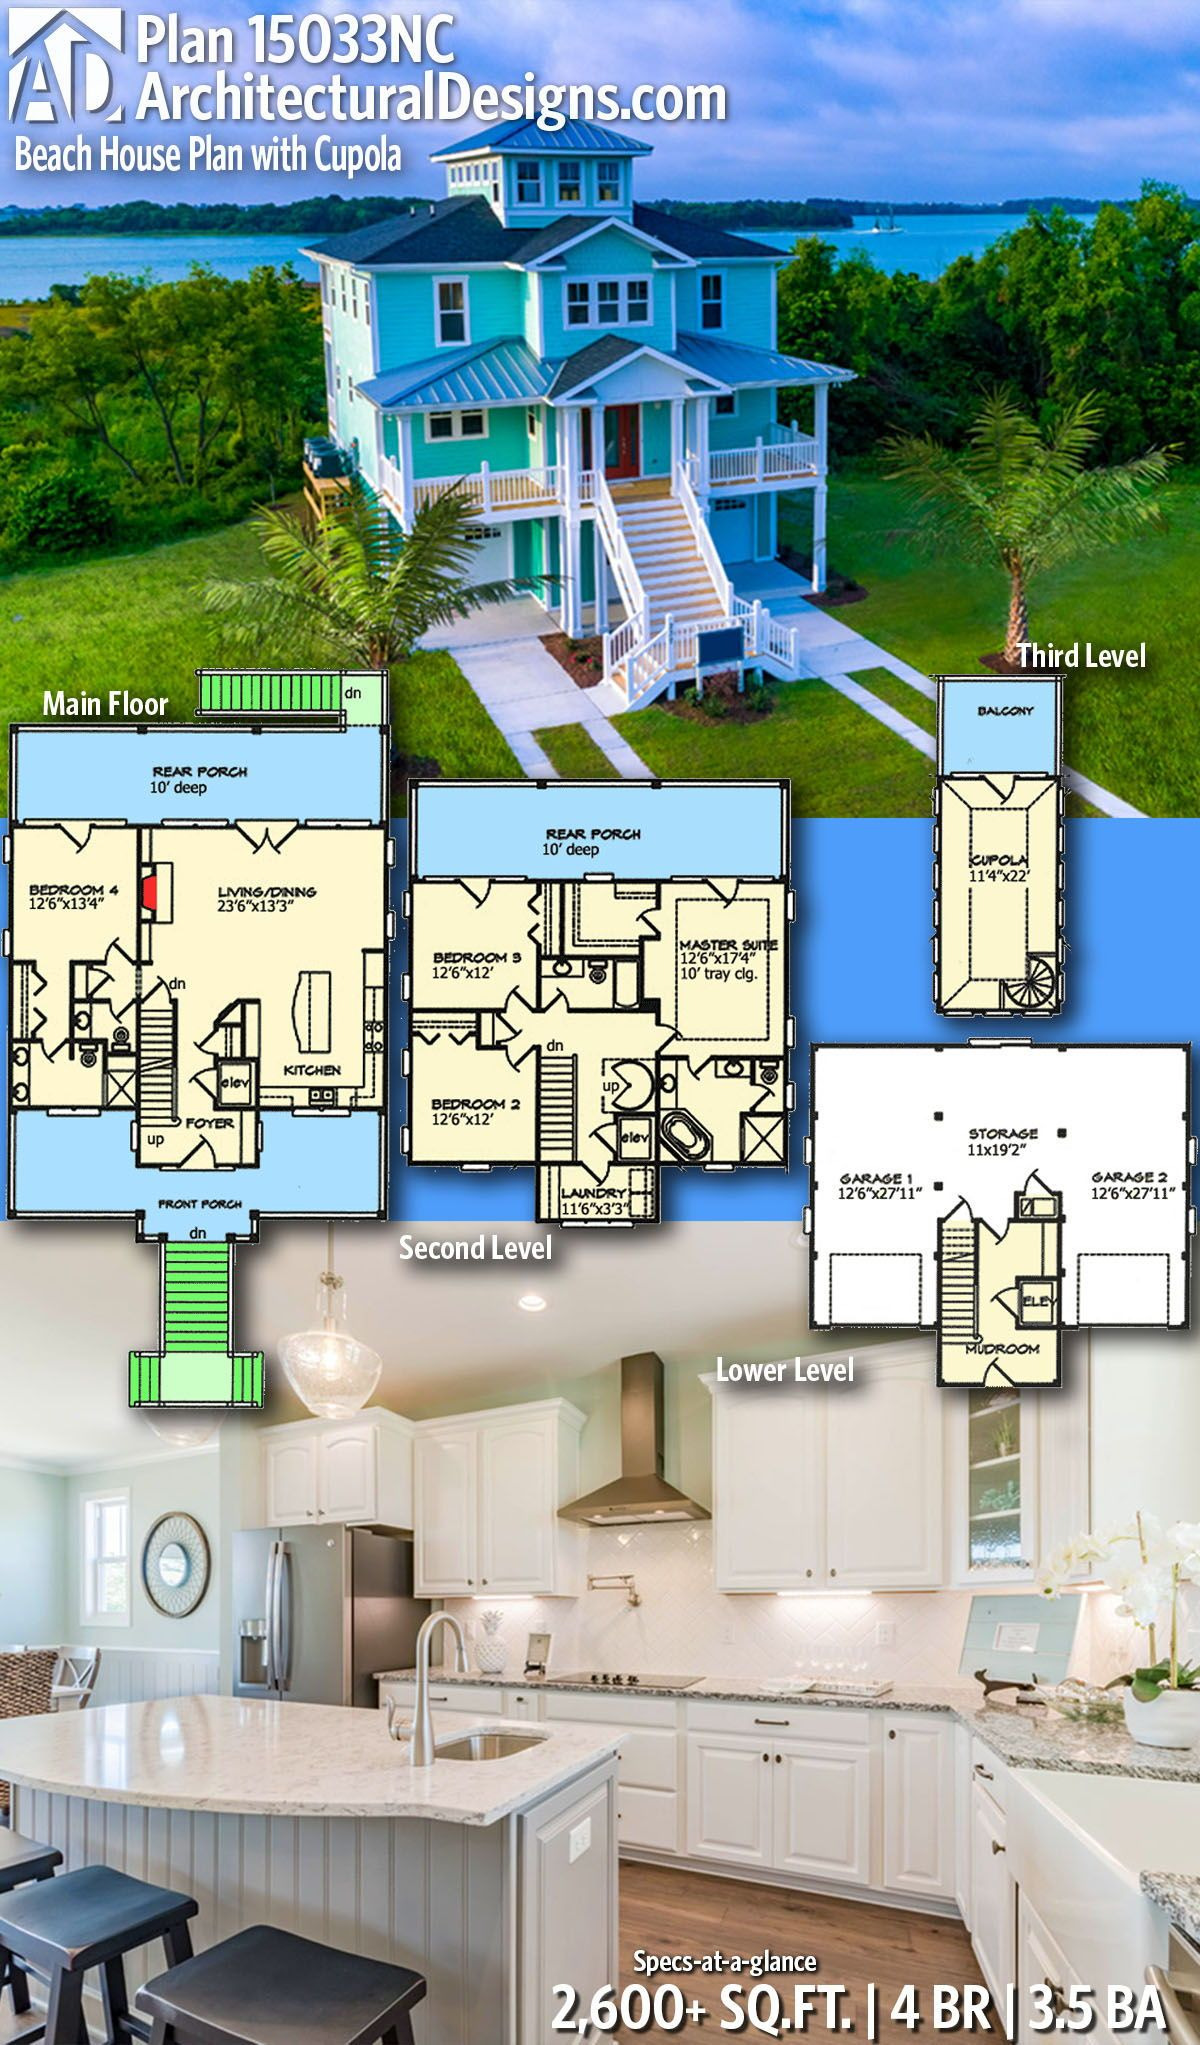 Beach Cottage Designs and Floor Plans Lovely Plan Nc Beach House Plan with Cupola In 2020